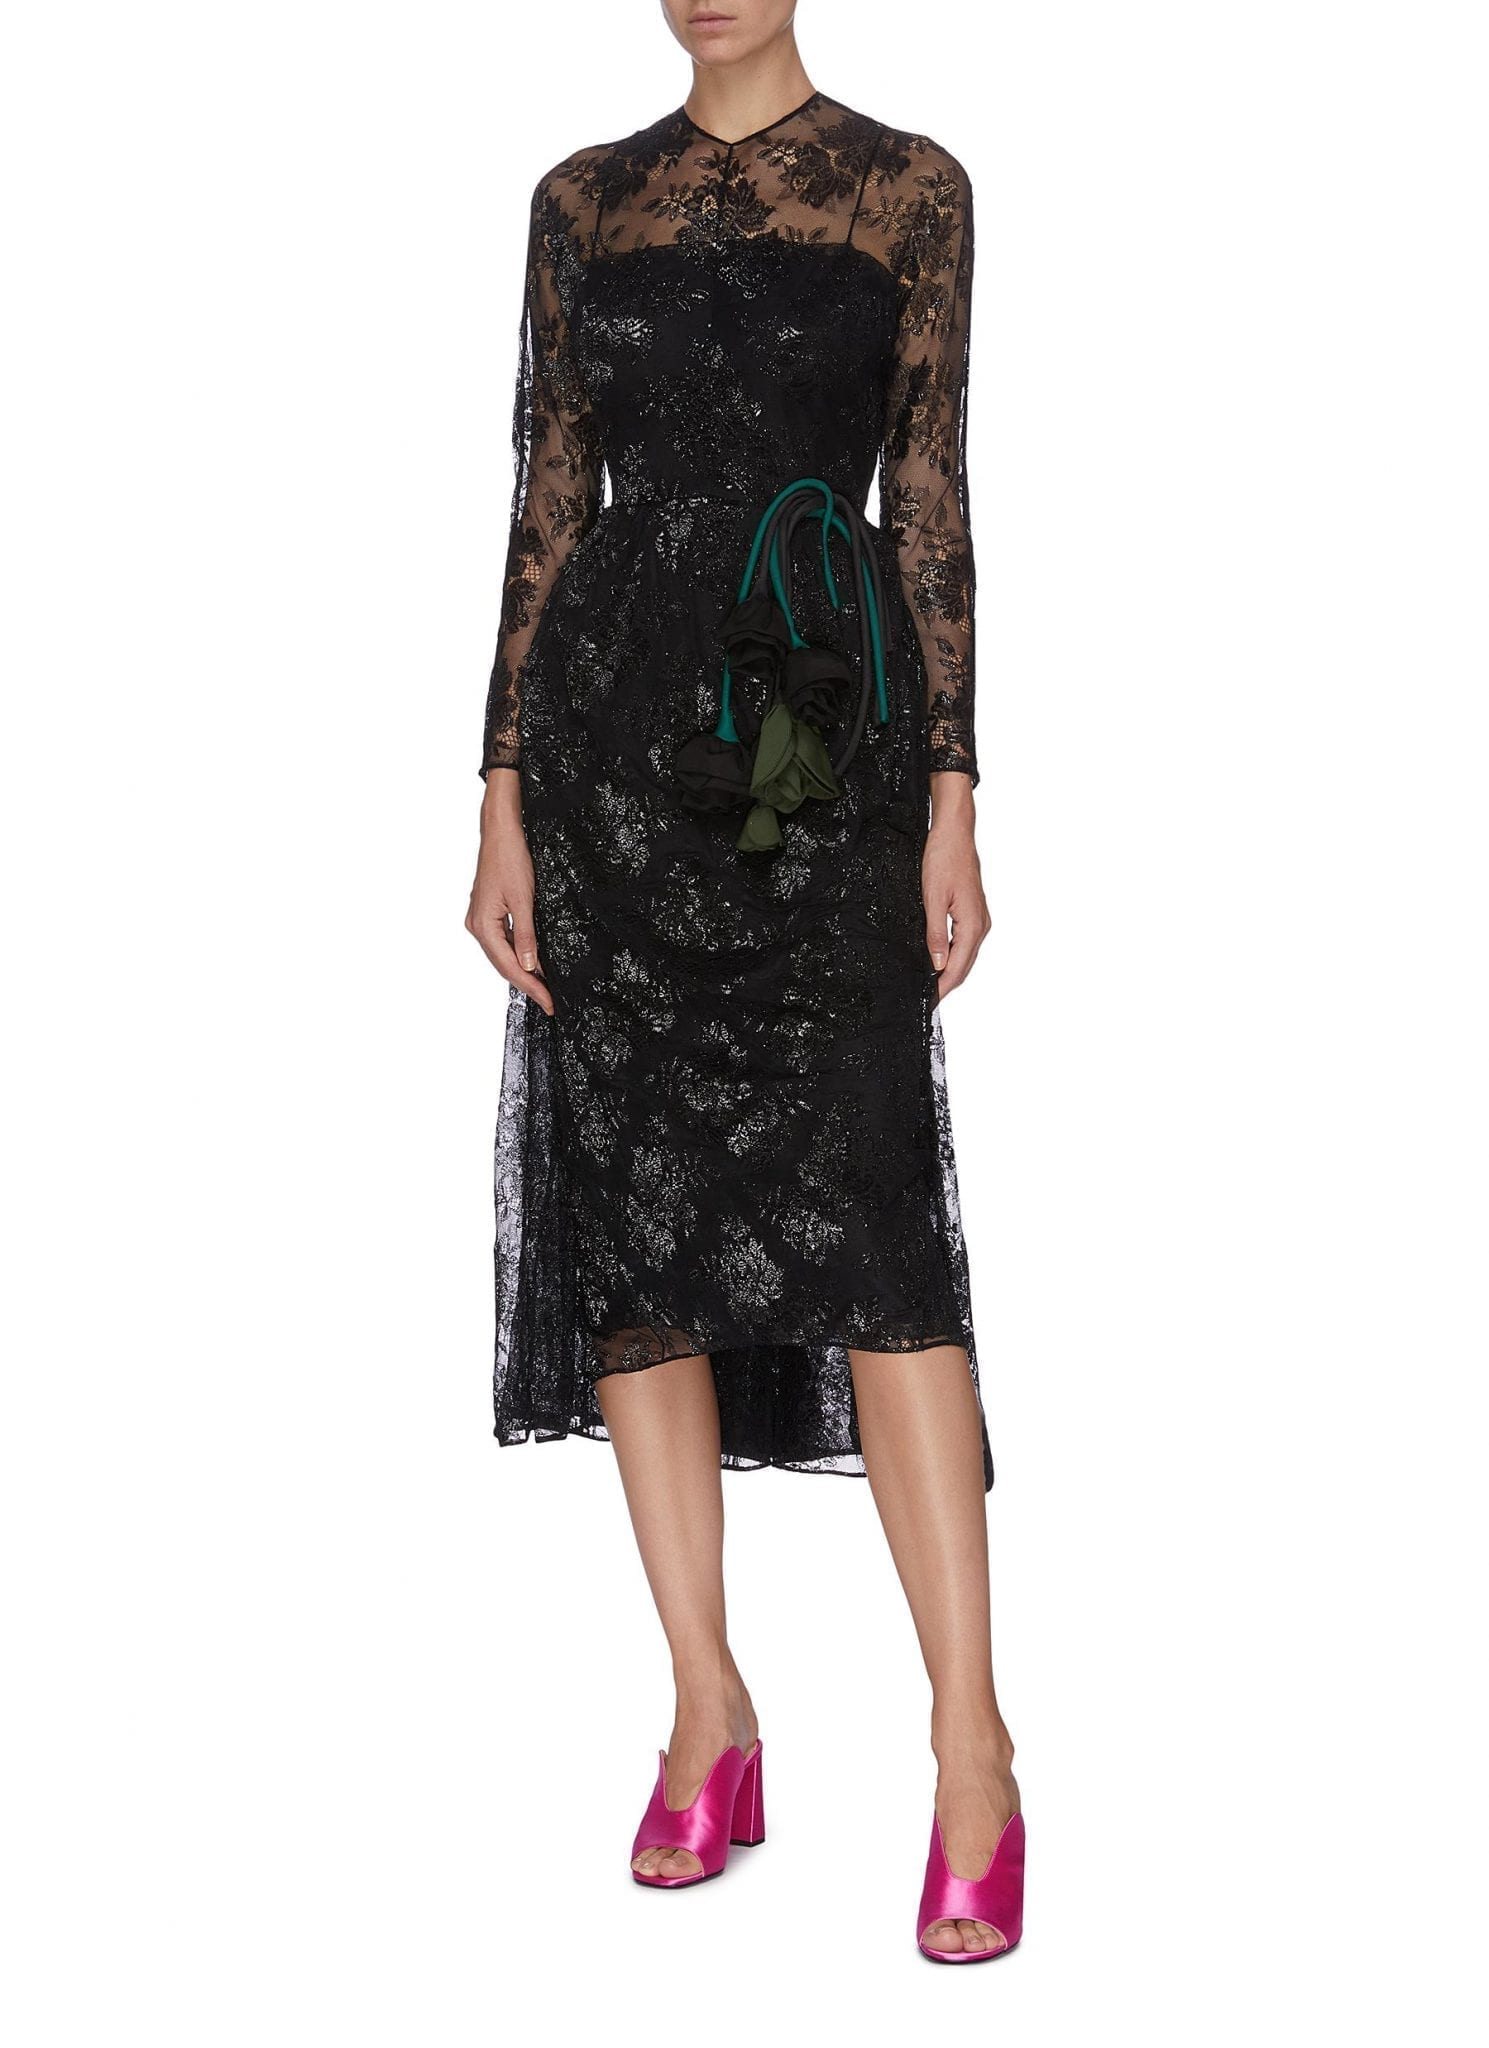 PRADA Floral Motif Embroidered Sheer Lace Dress